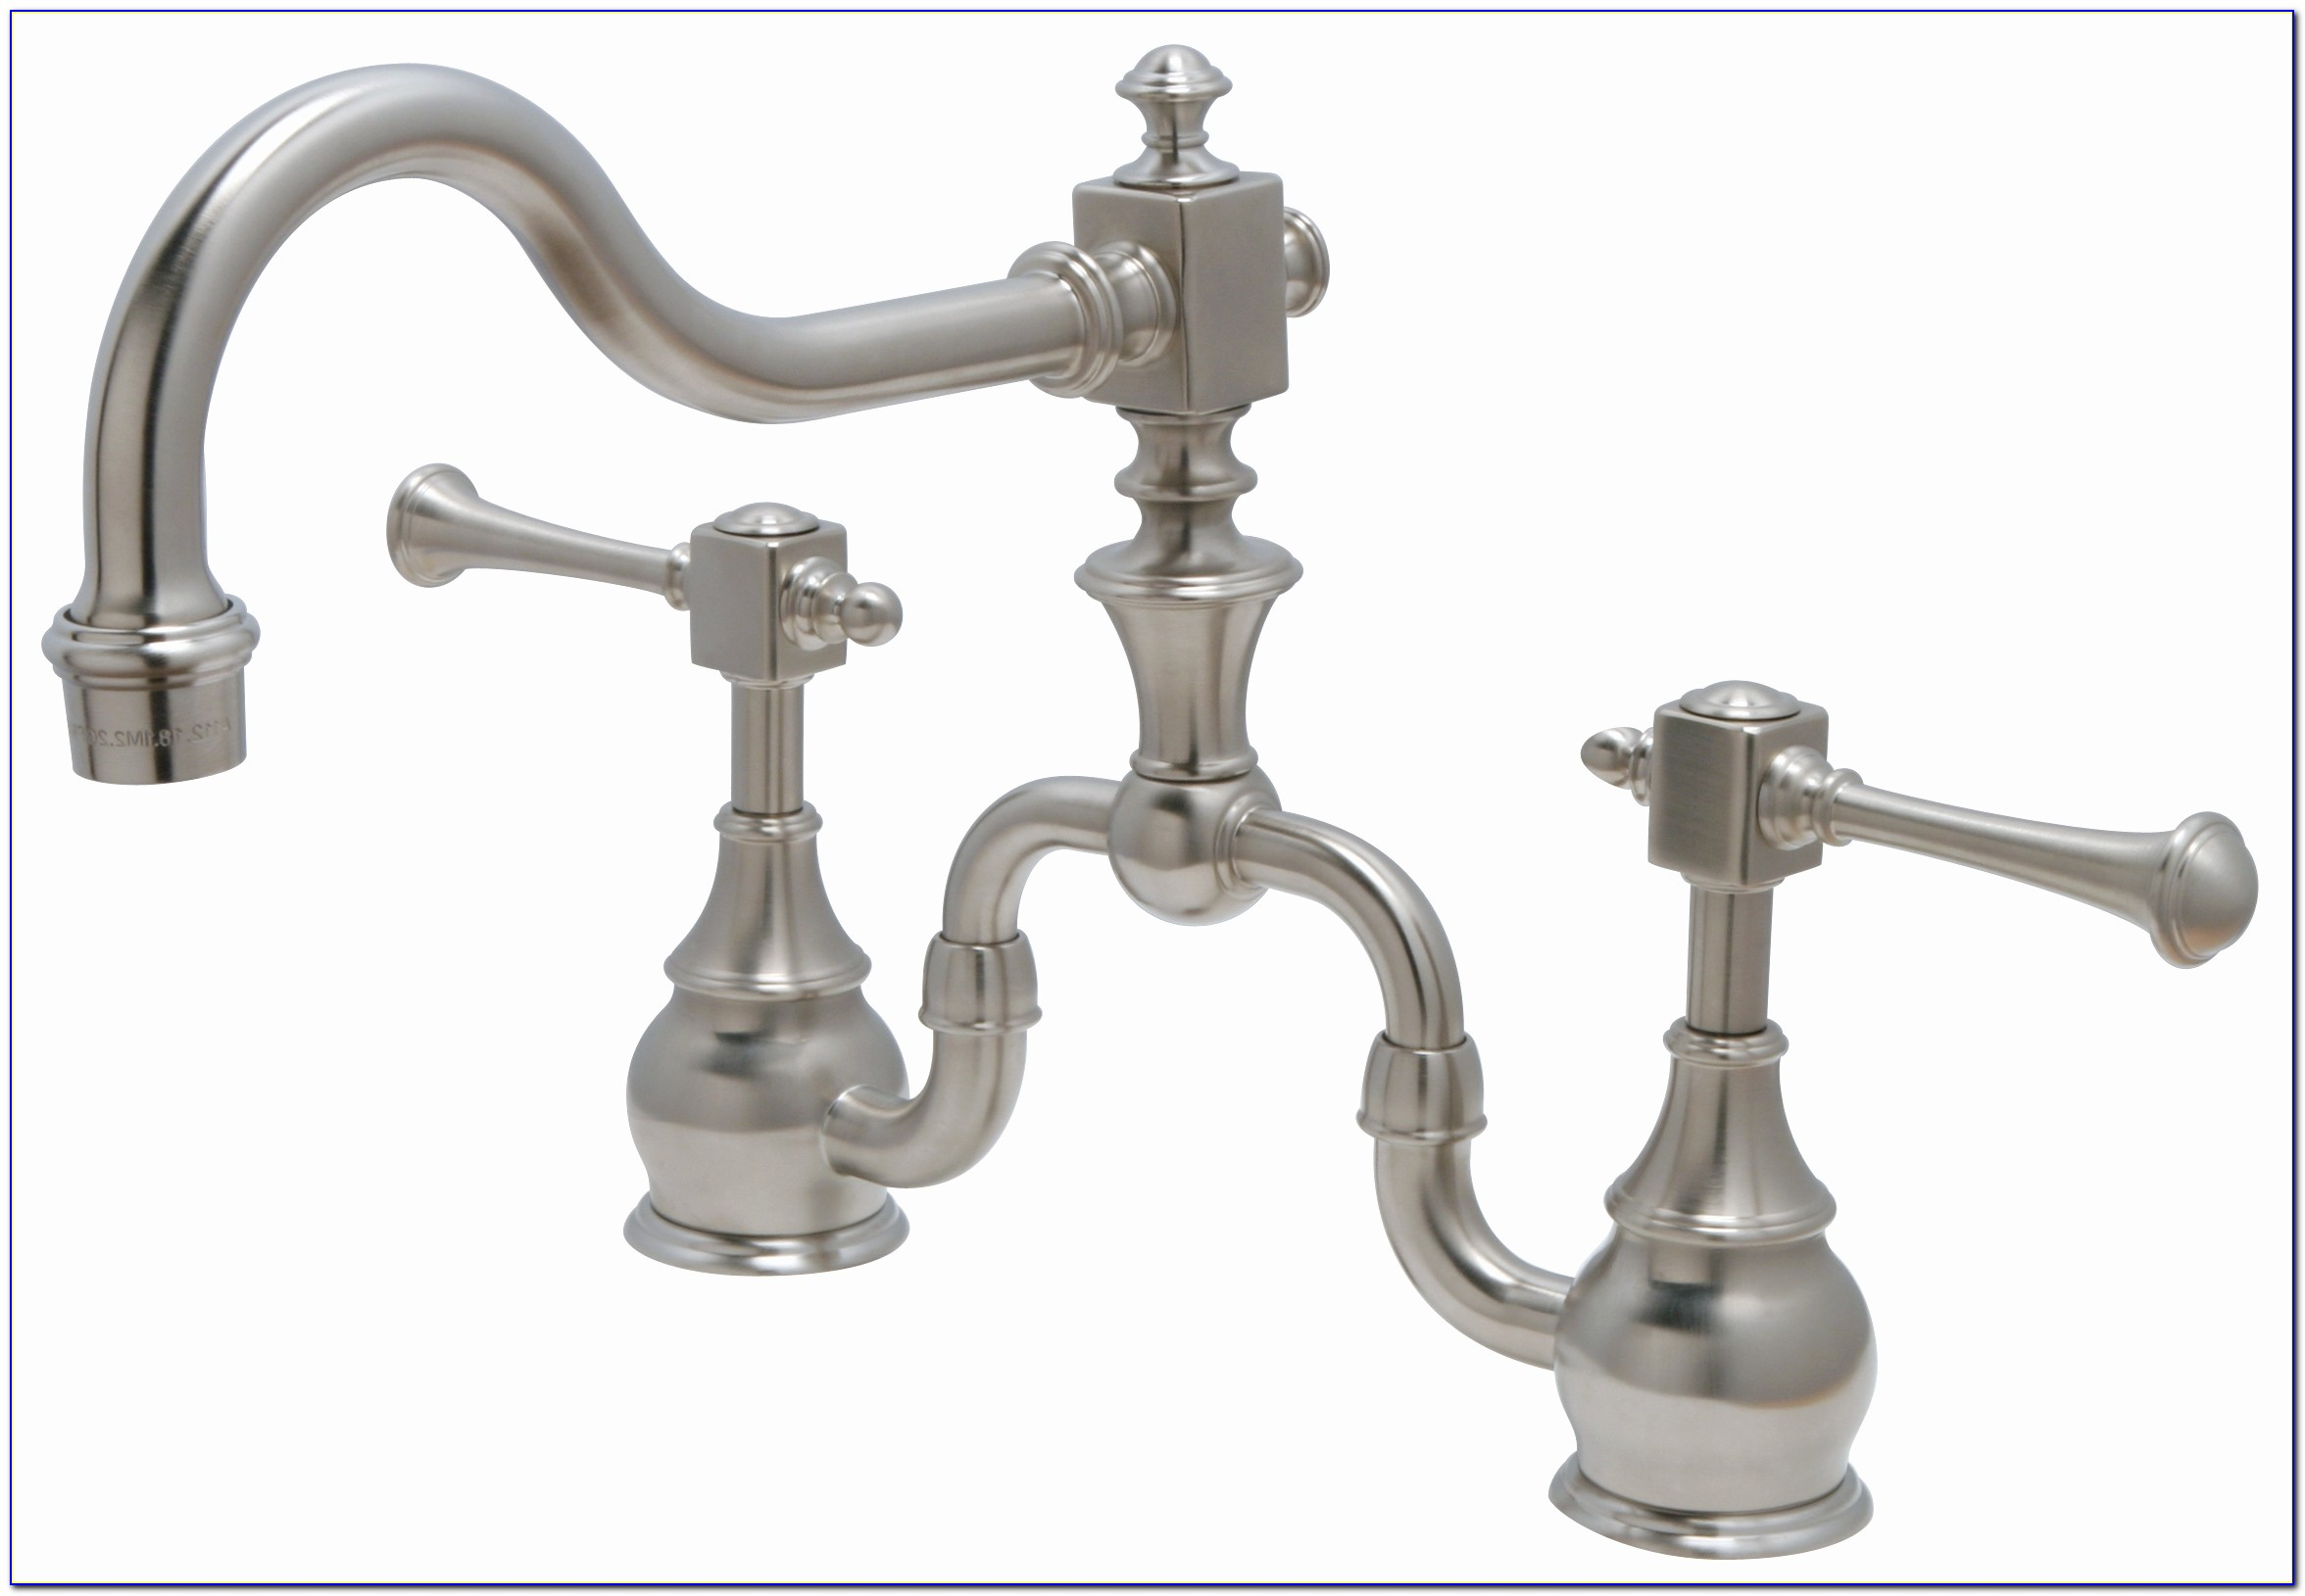 Lowes Kitchen Sinks And Faucets Best Of Decor Antique Bridge Kitchen Sink Faucets Lowes For Pretty